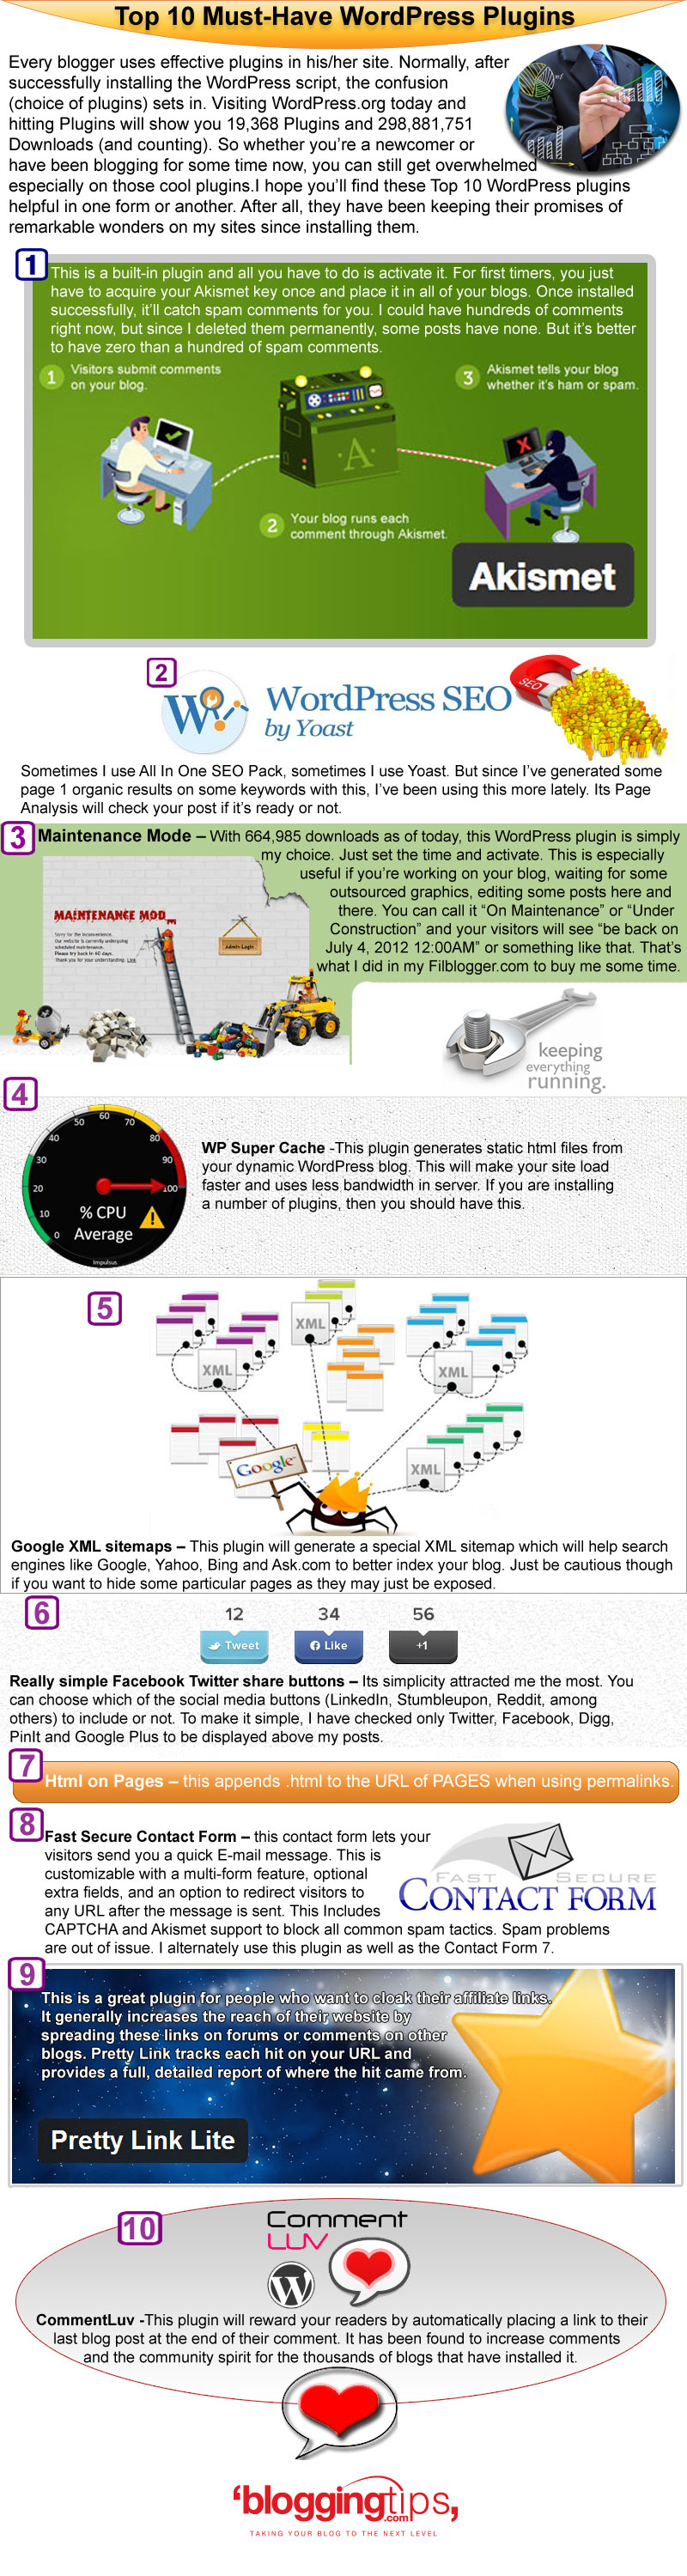 blogging-tips-infographic